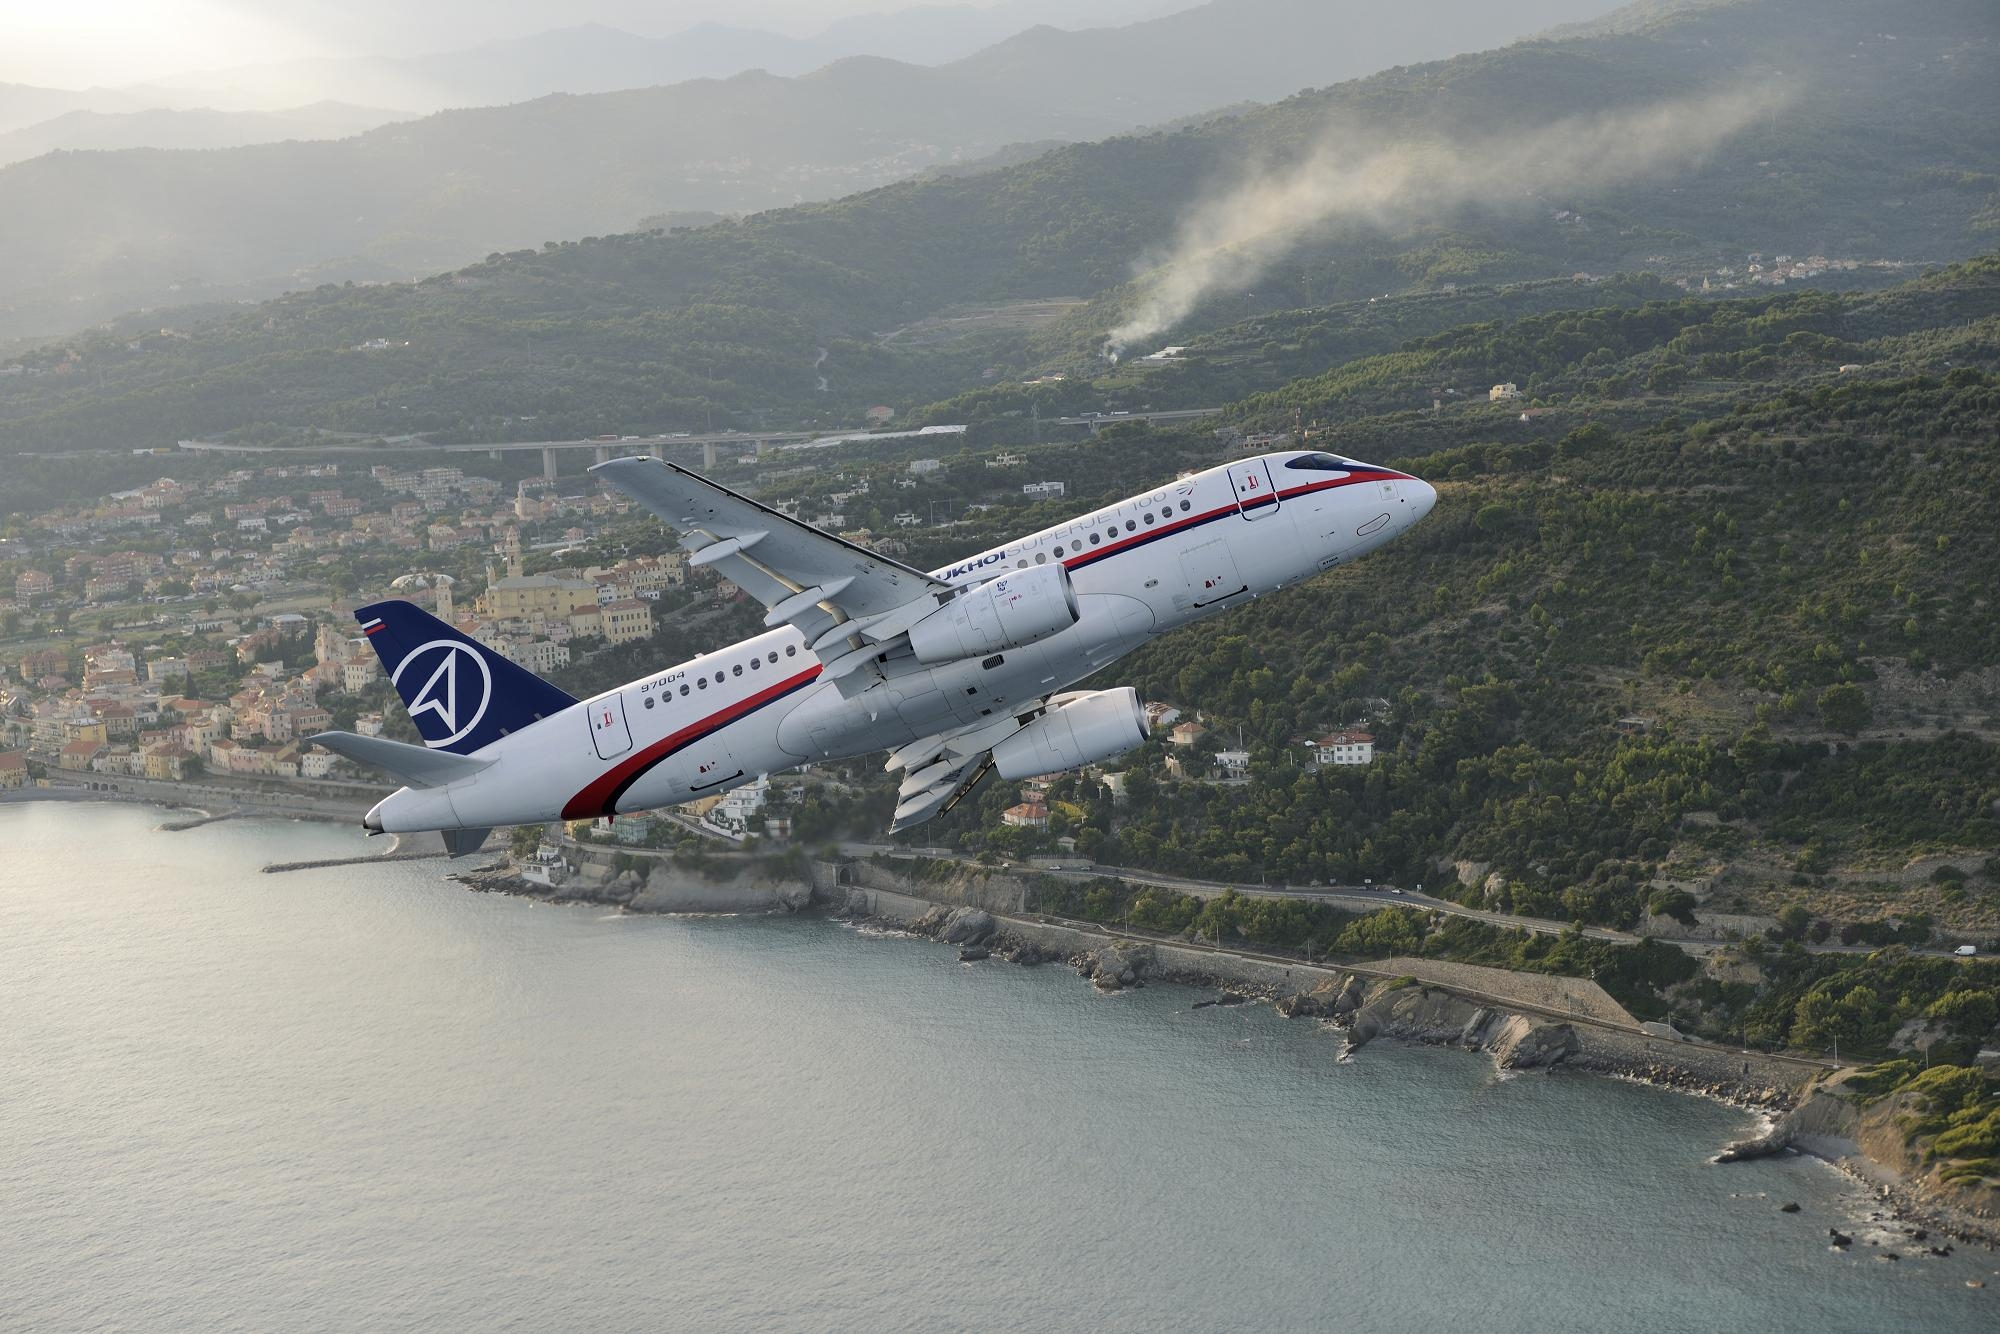 Stlc And Scat Signed A Lease Agreement For 15 Sukhoi Superjet 100